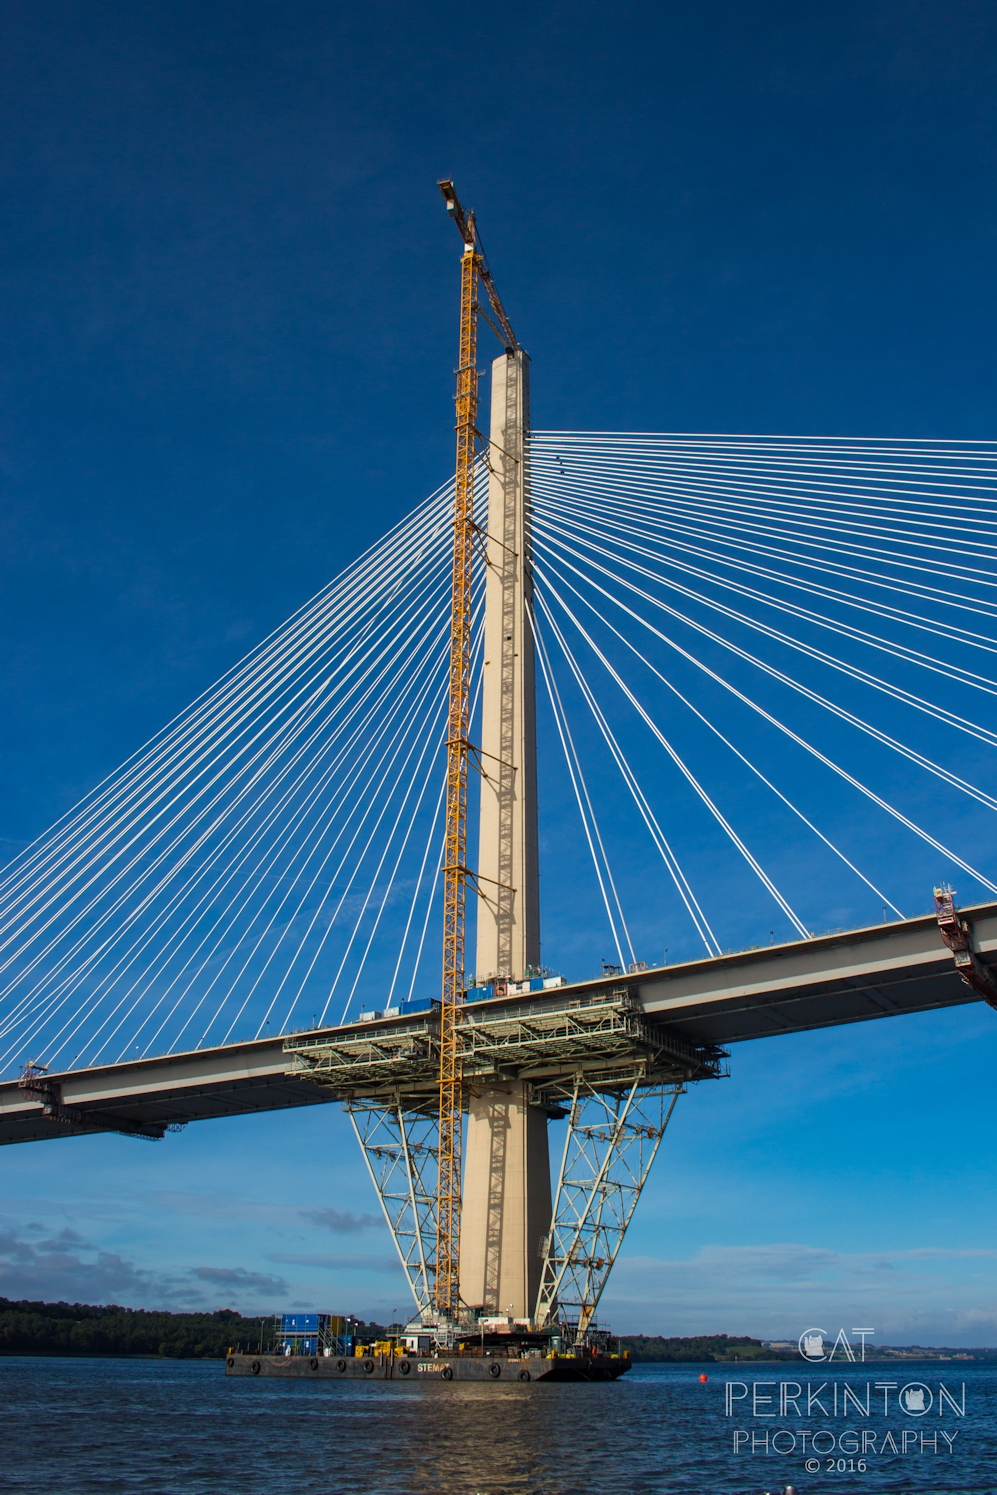 Bowstrings - New Forth Crossing